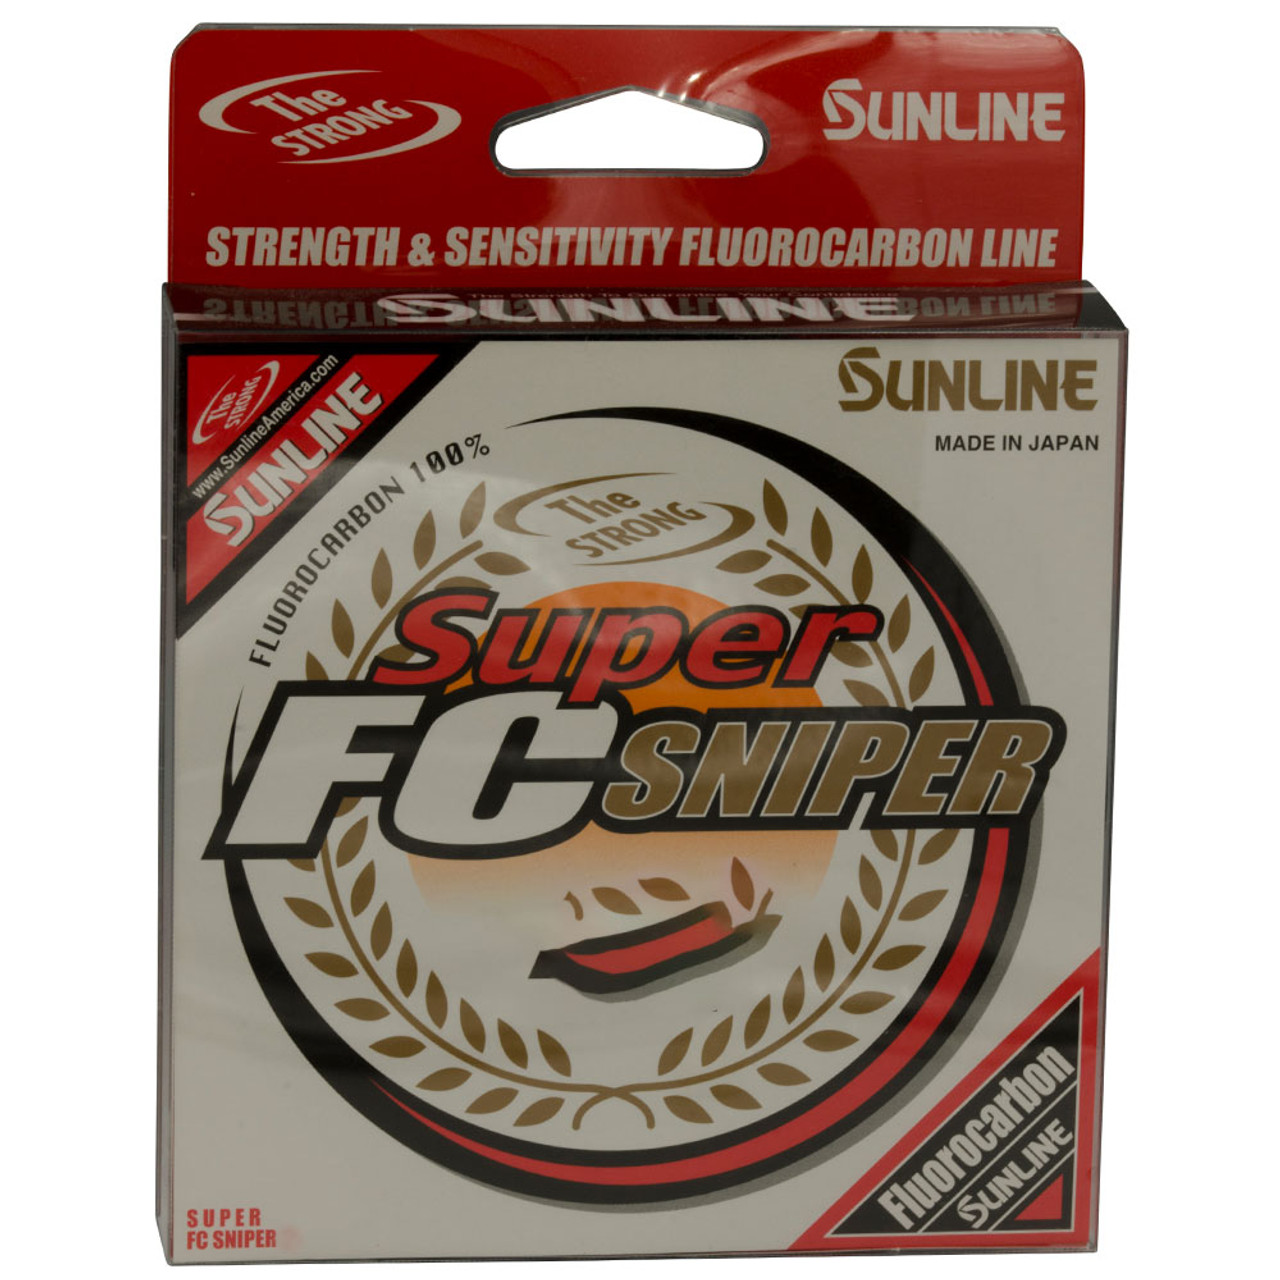 Sunline Super FC Sniper Clear Fluorocarbon 200 Yards-Select Size